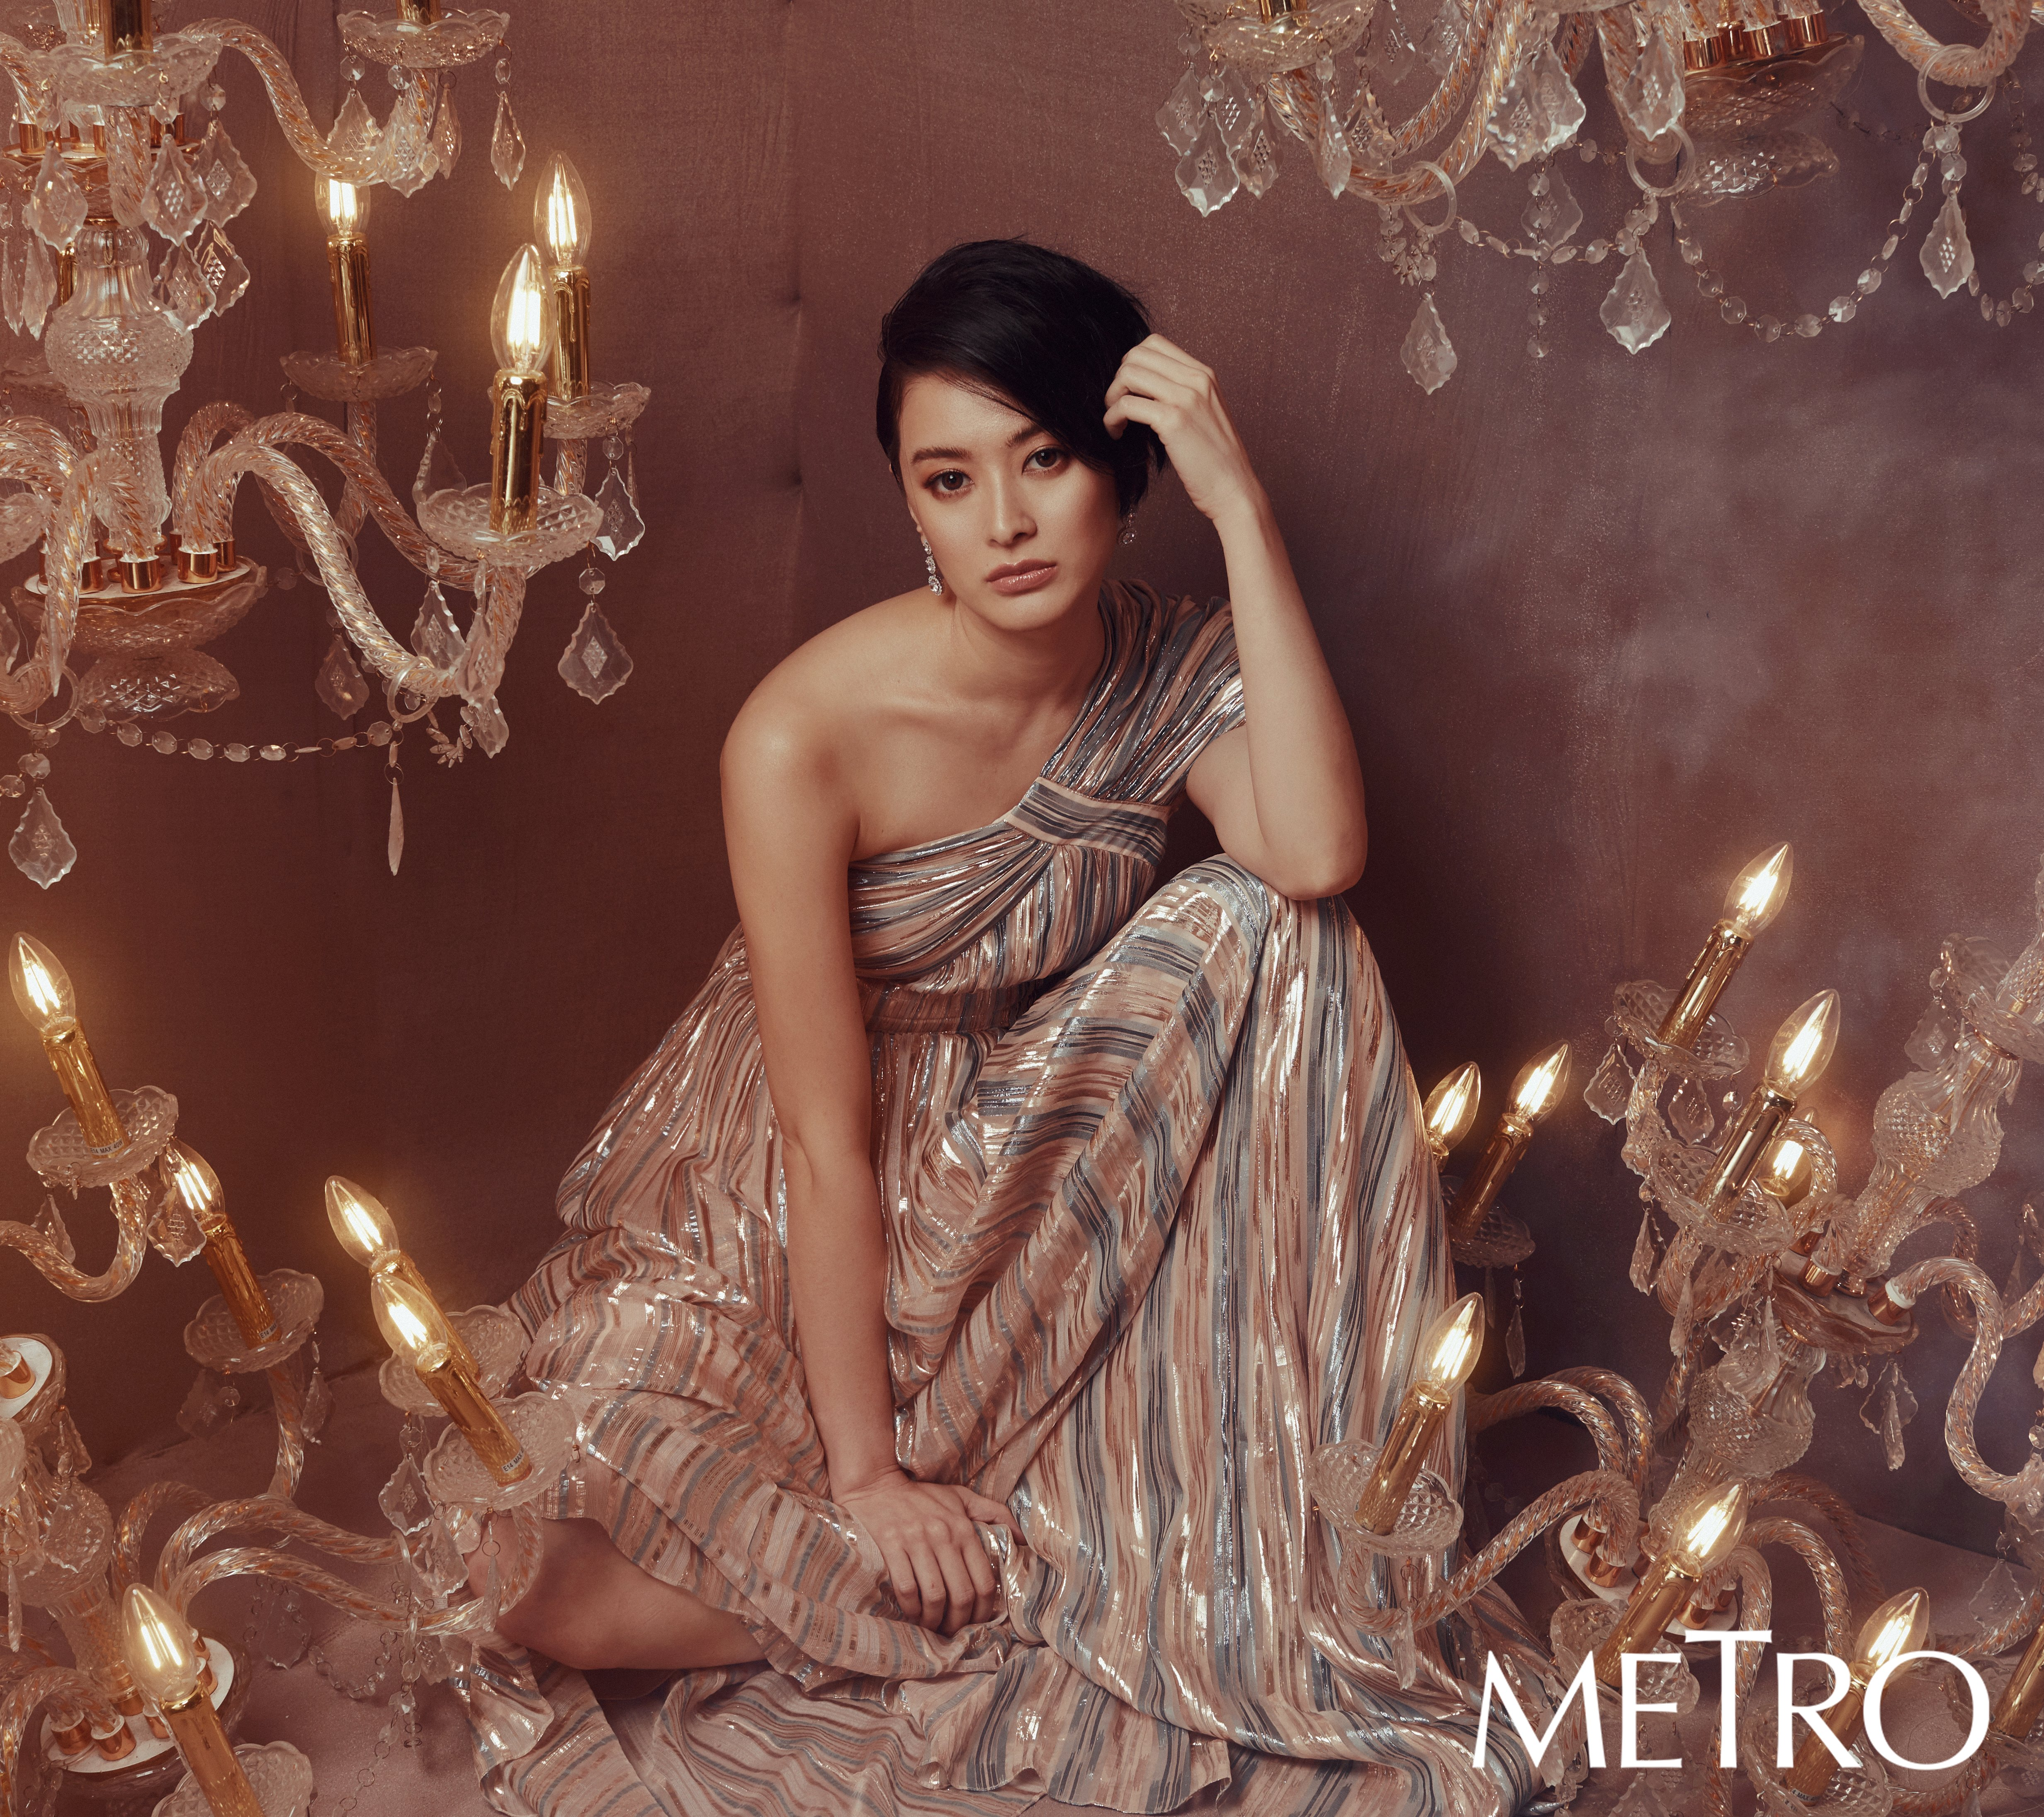 Metro At 30 Maricar Reyes Poon Is A Woman Of Many Hats And We Love Her For It Metro Style